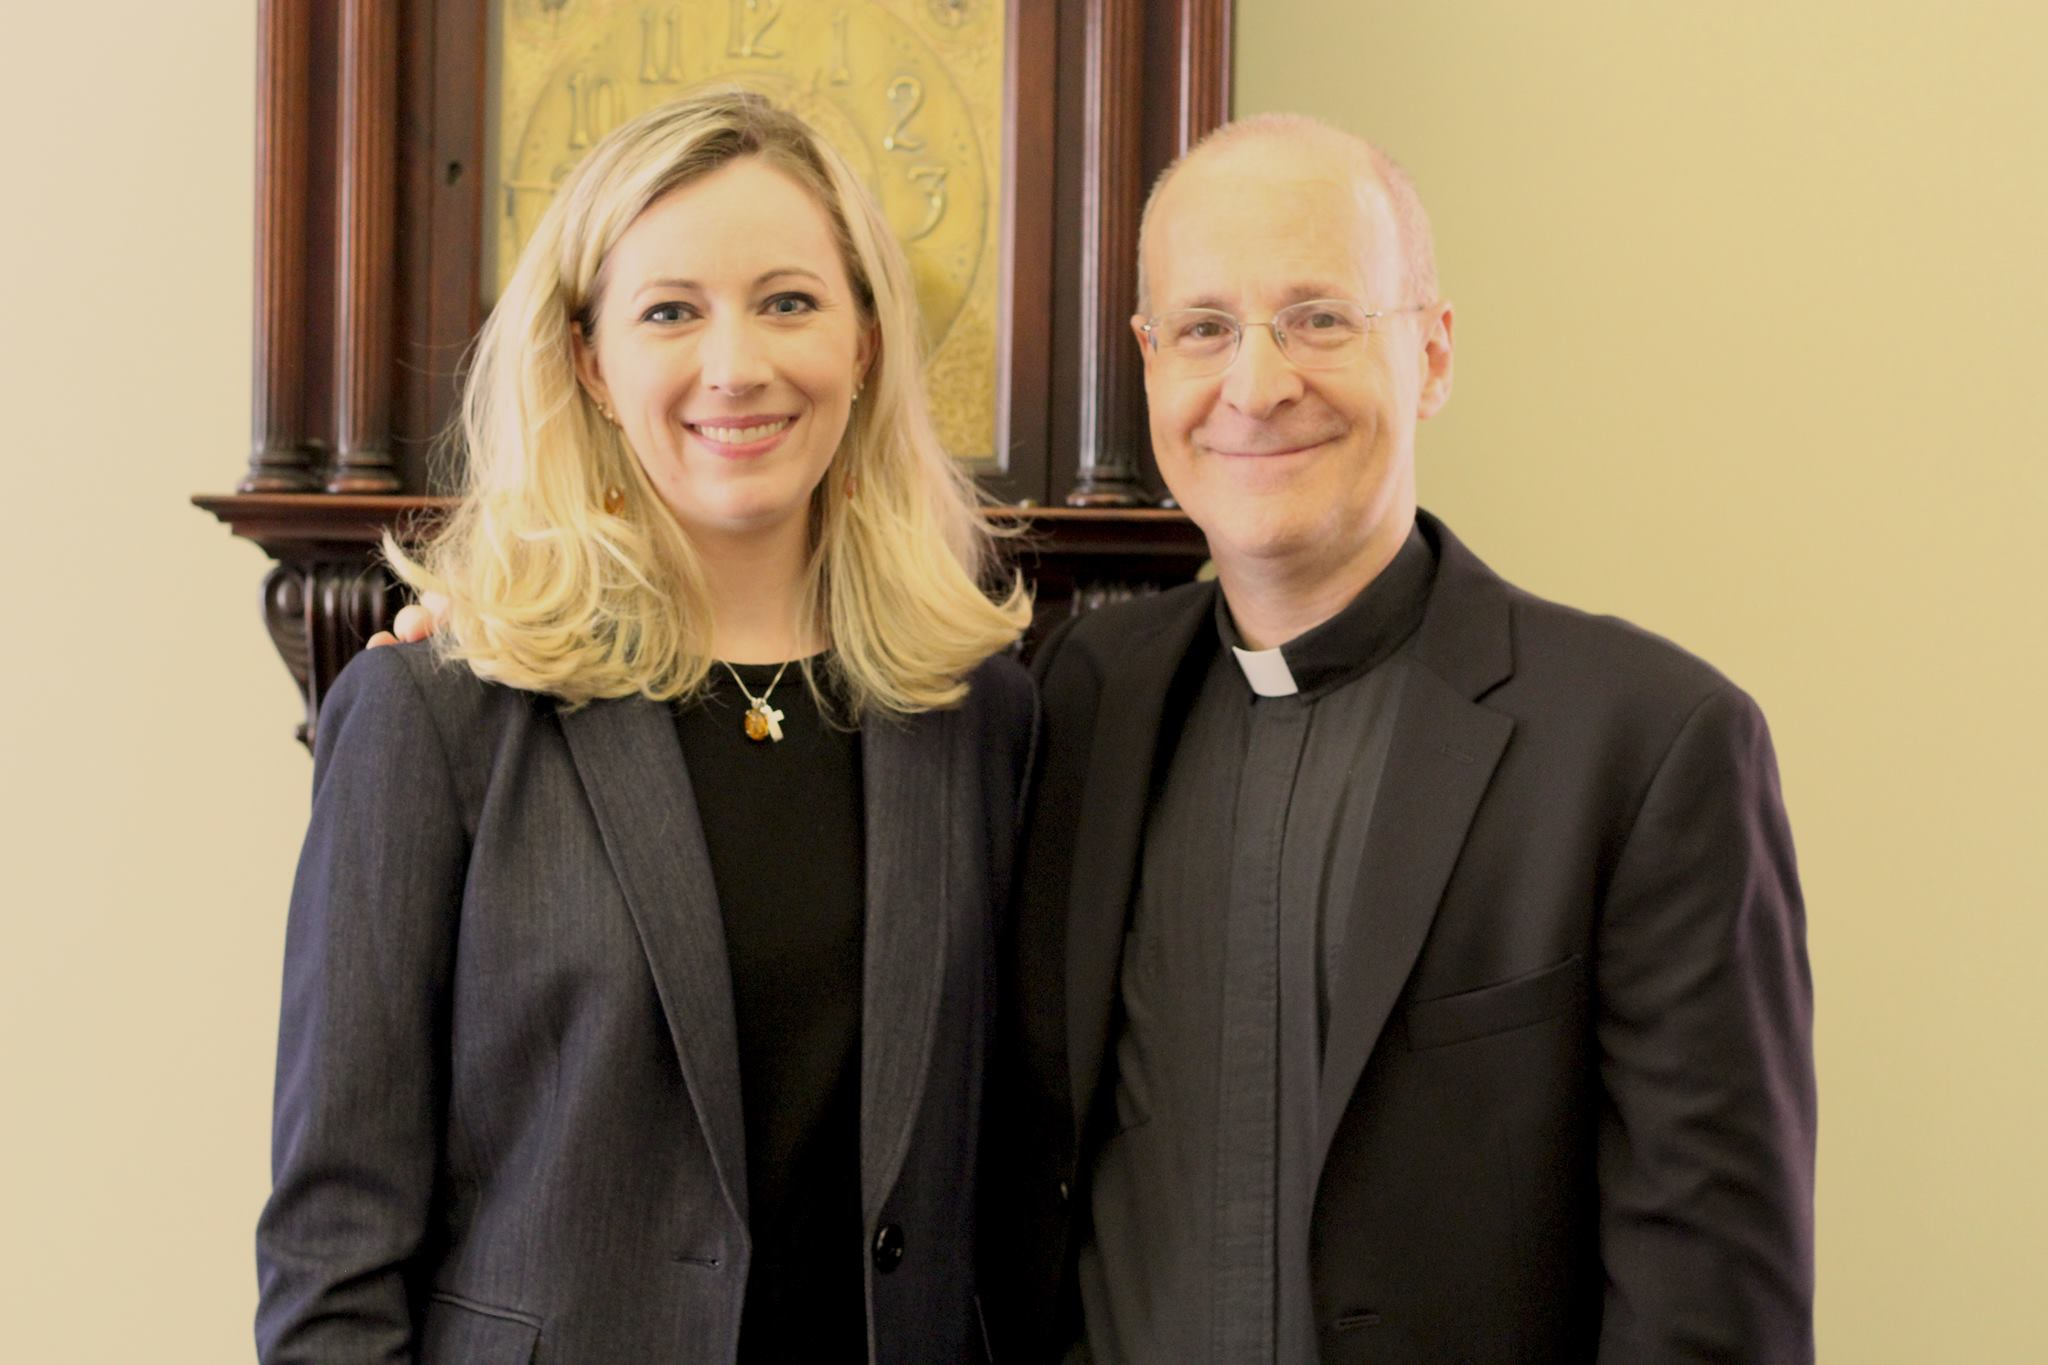 DEANNA HOWES & REV. JAMES MARTIN, S.J. AT THE CATHEDRAL OF ST. MATTHEW THE APOSTLE IN WASHINGTON, D.C. (PHOTO BY R. CARLO CARAG)